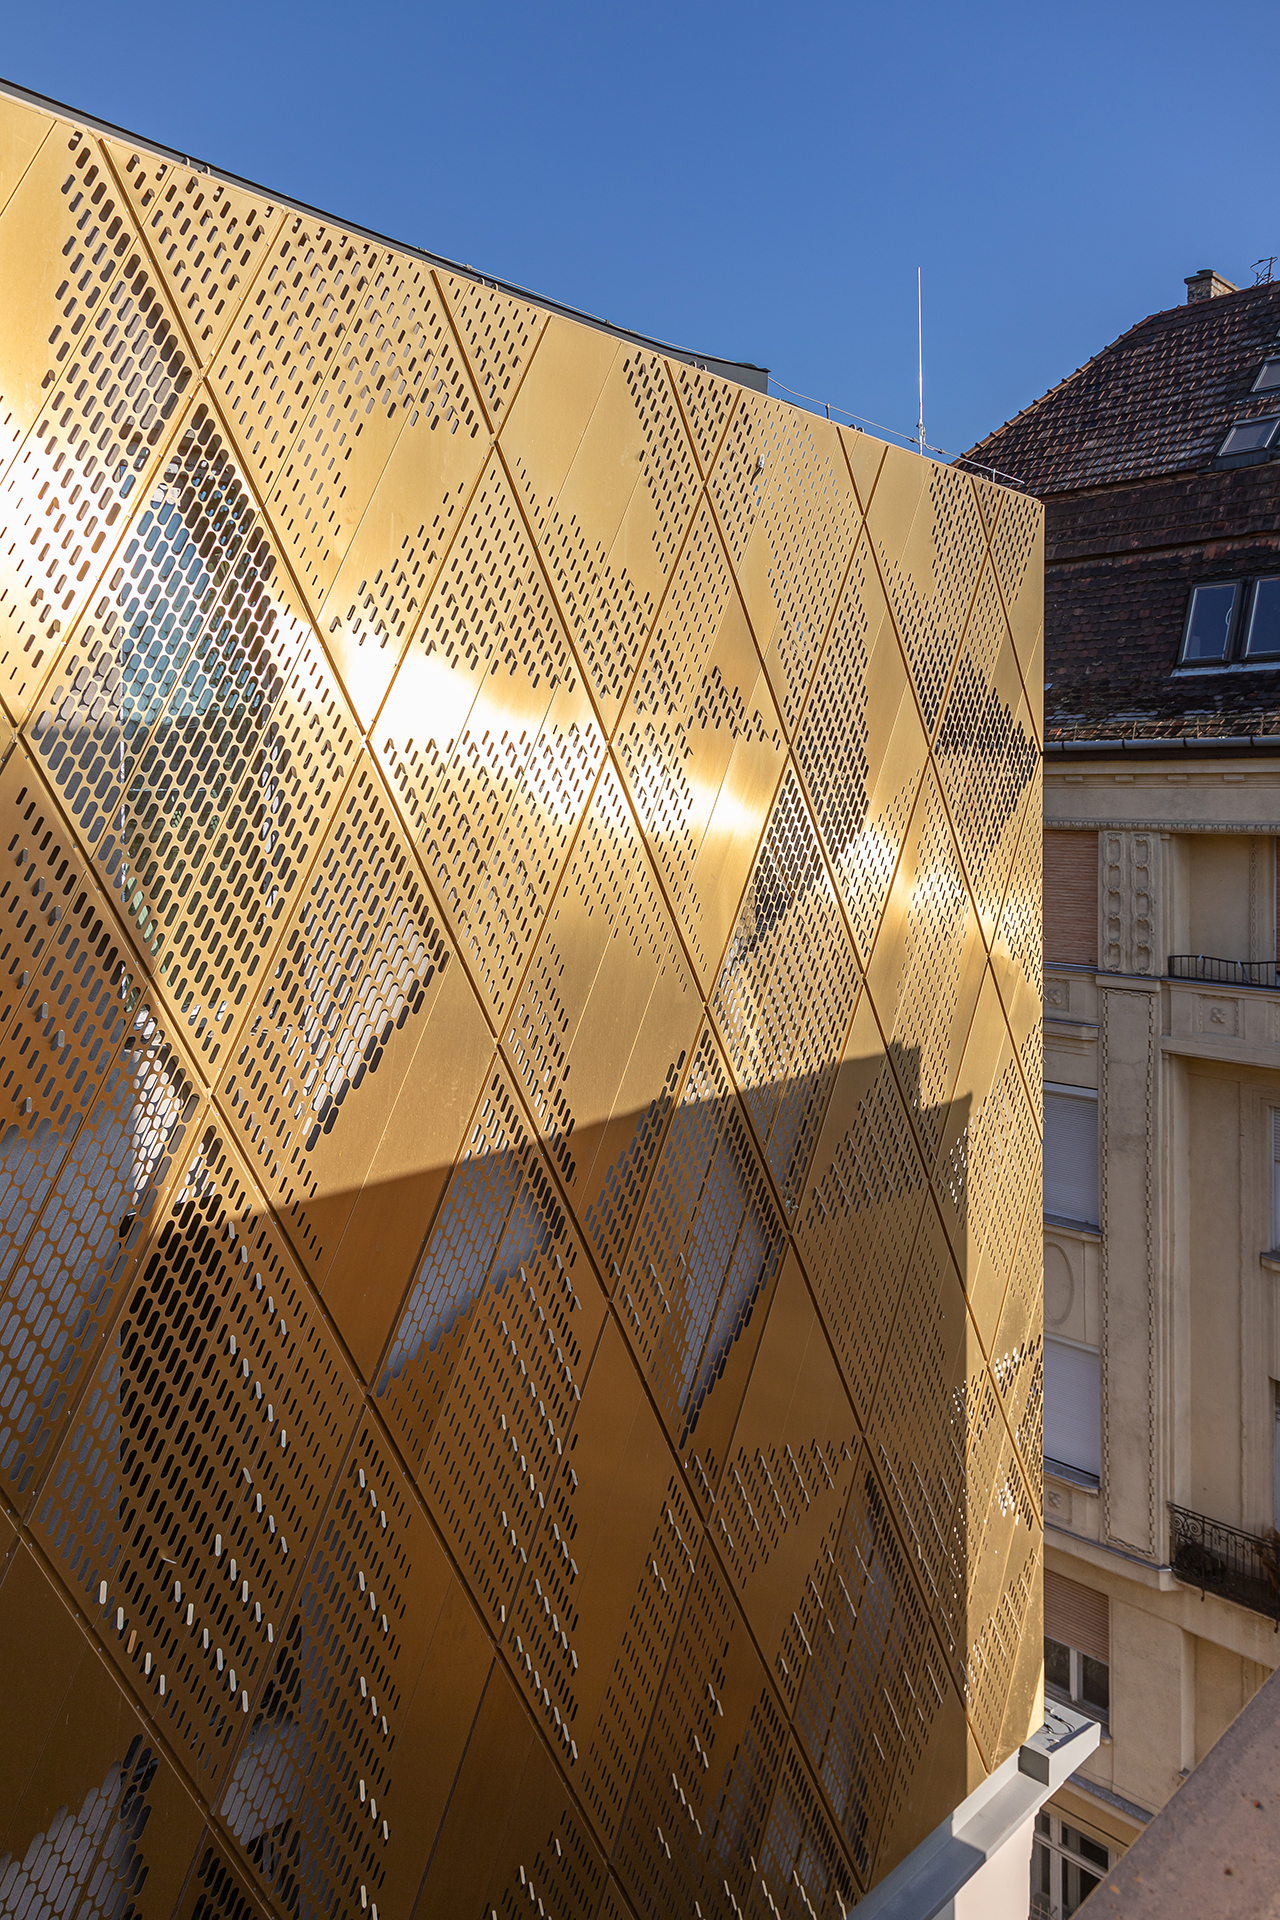 View of the corner of the facades of the Hard Rock Hotel located in Budapest, Hungary. The gold-coloured walls are clad from Nordic Royal copper.